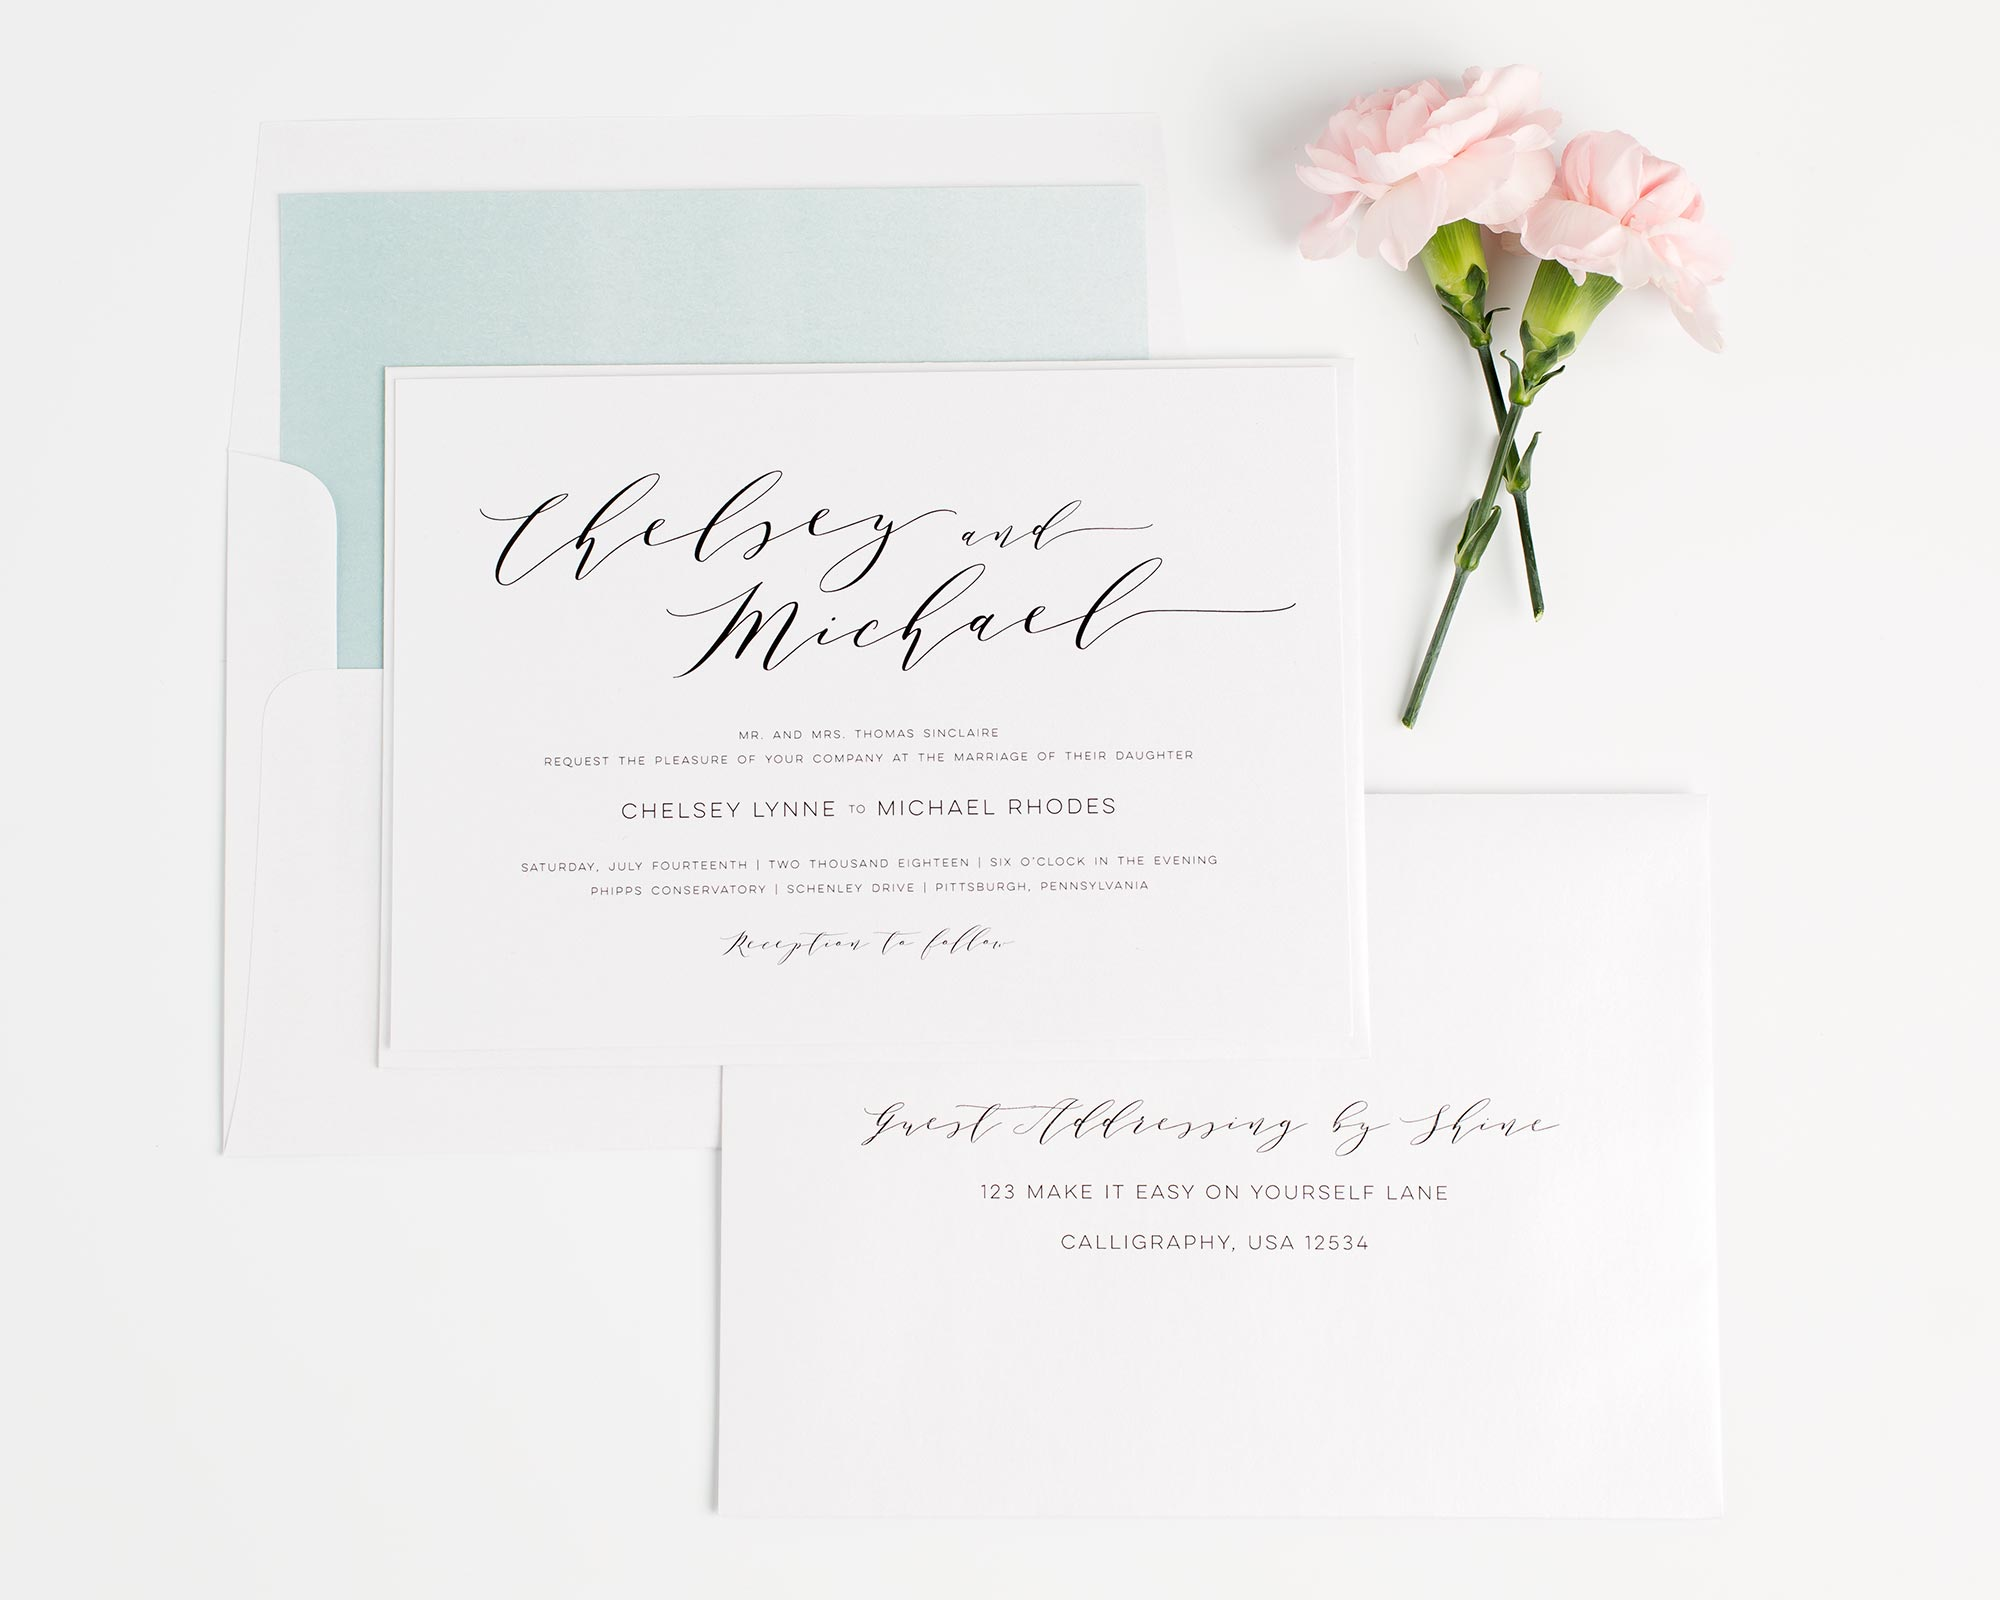 Romantic Wedding Invitations in Dusty Teal